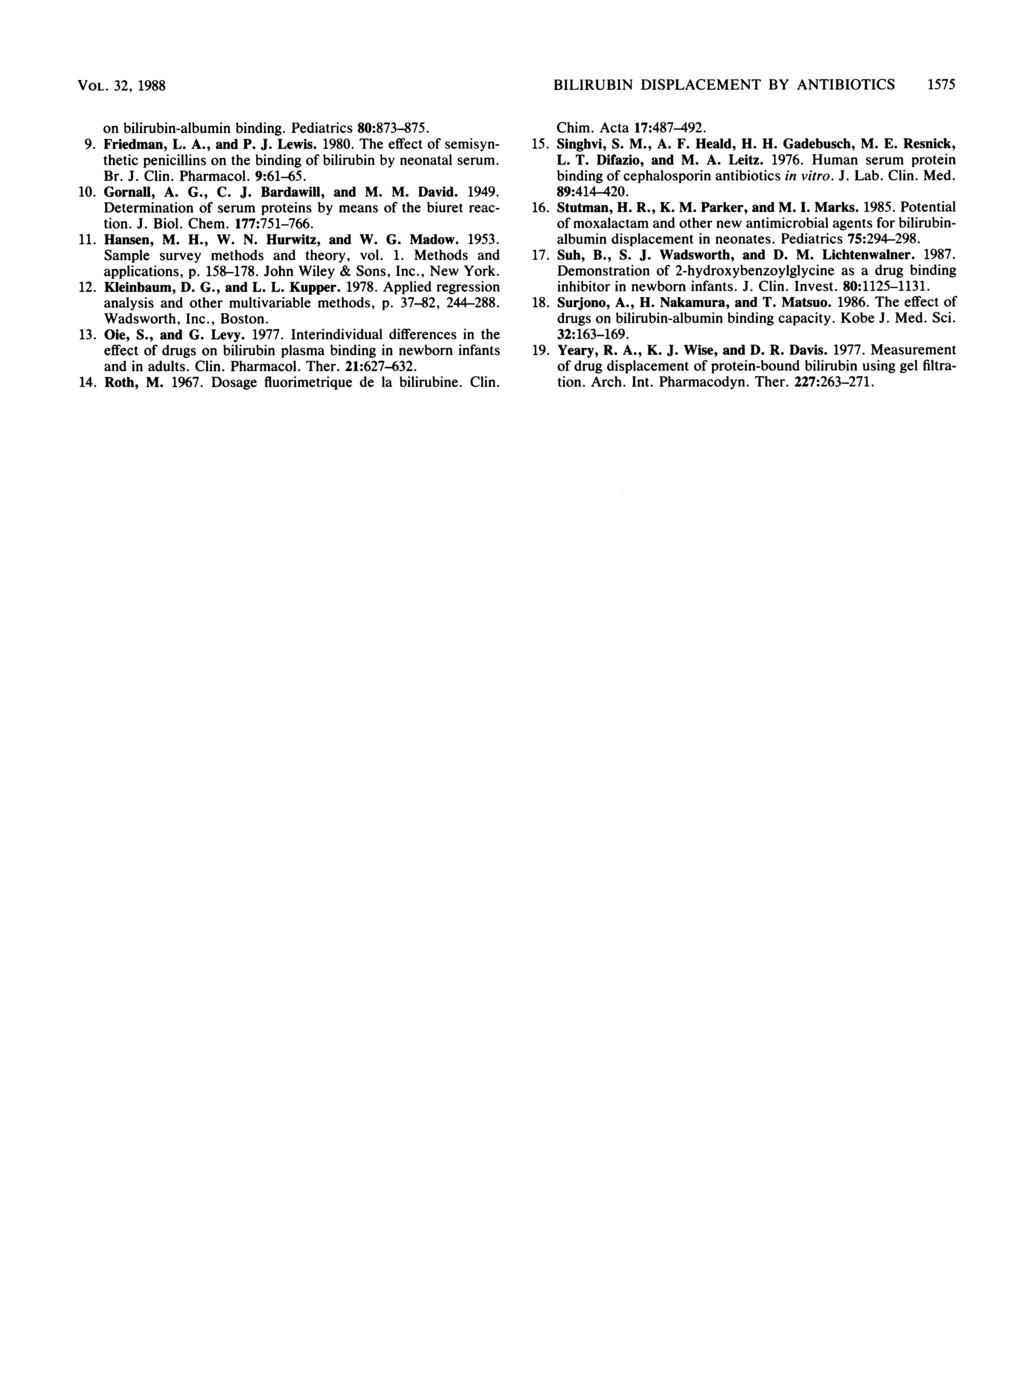 VOL. 32, 1988 on bilirubin-albumin binding. Pediatrics 8:873-875. 9. Friedman, L. A., and P. J. Lewis. 198. The effect of semisynthetic penicillins on the binding of bilirubin by neonatal serum. Br.